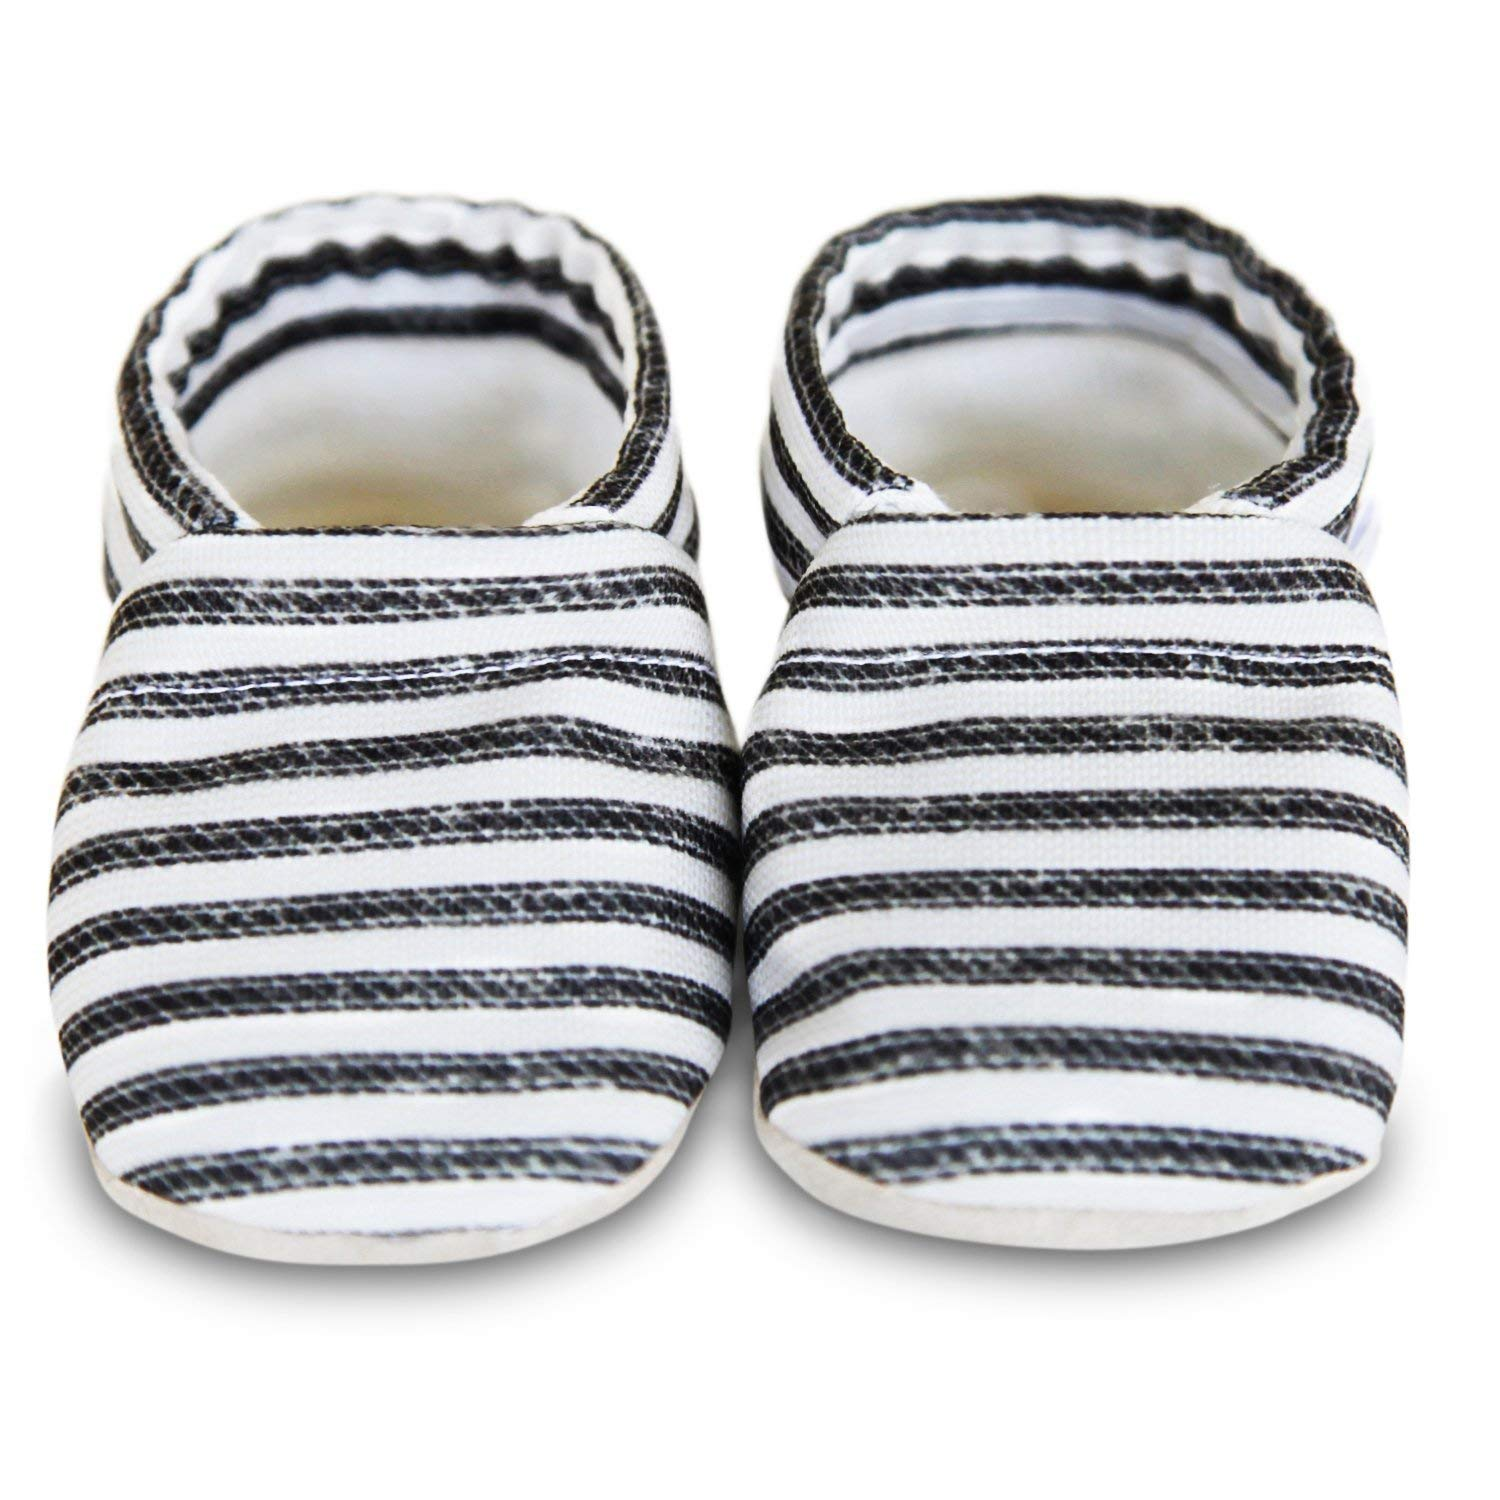 Organic soft soled baby shoes, JORDAN